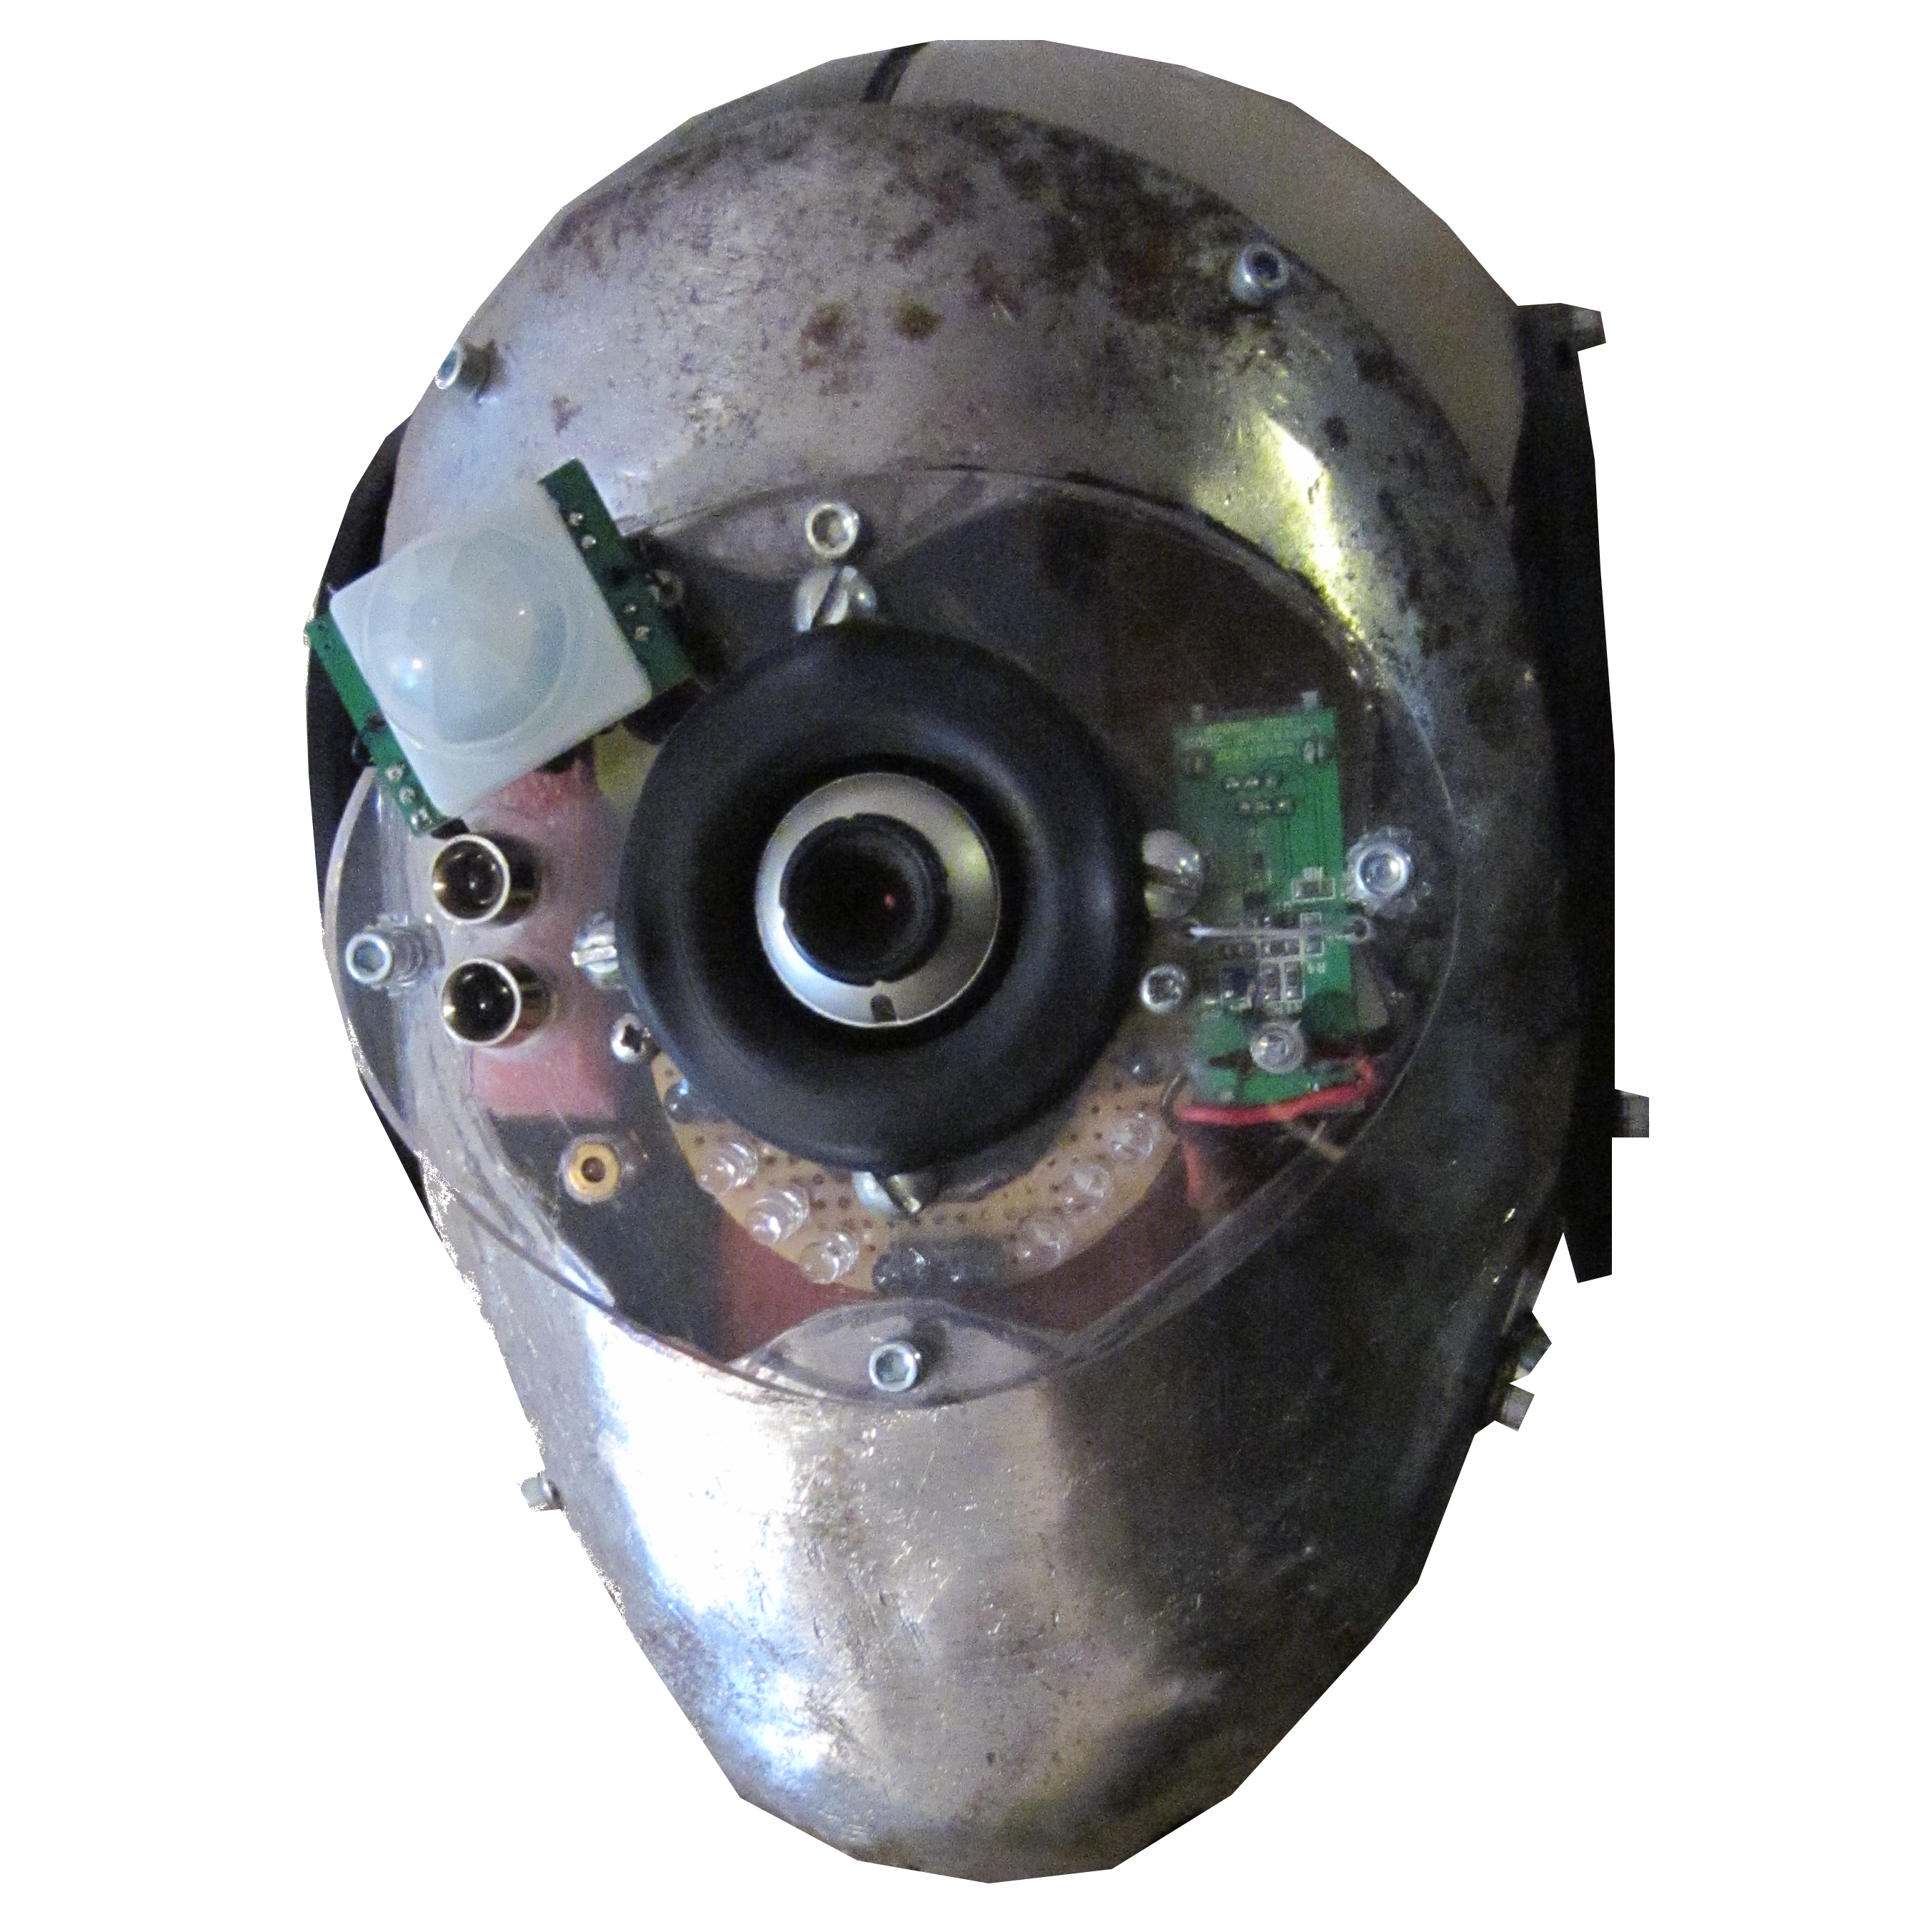 Robot head png. File salvius wikimedia commons